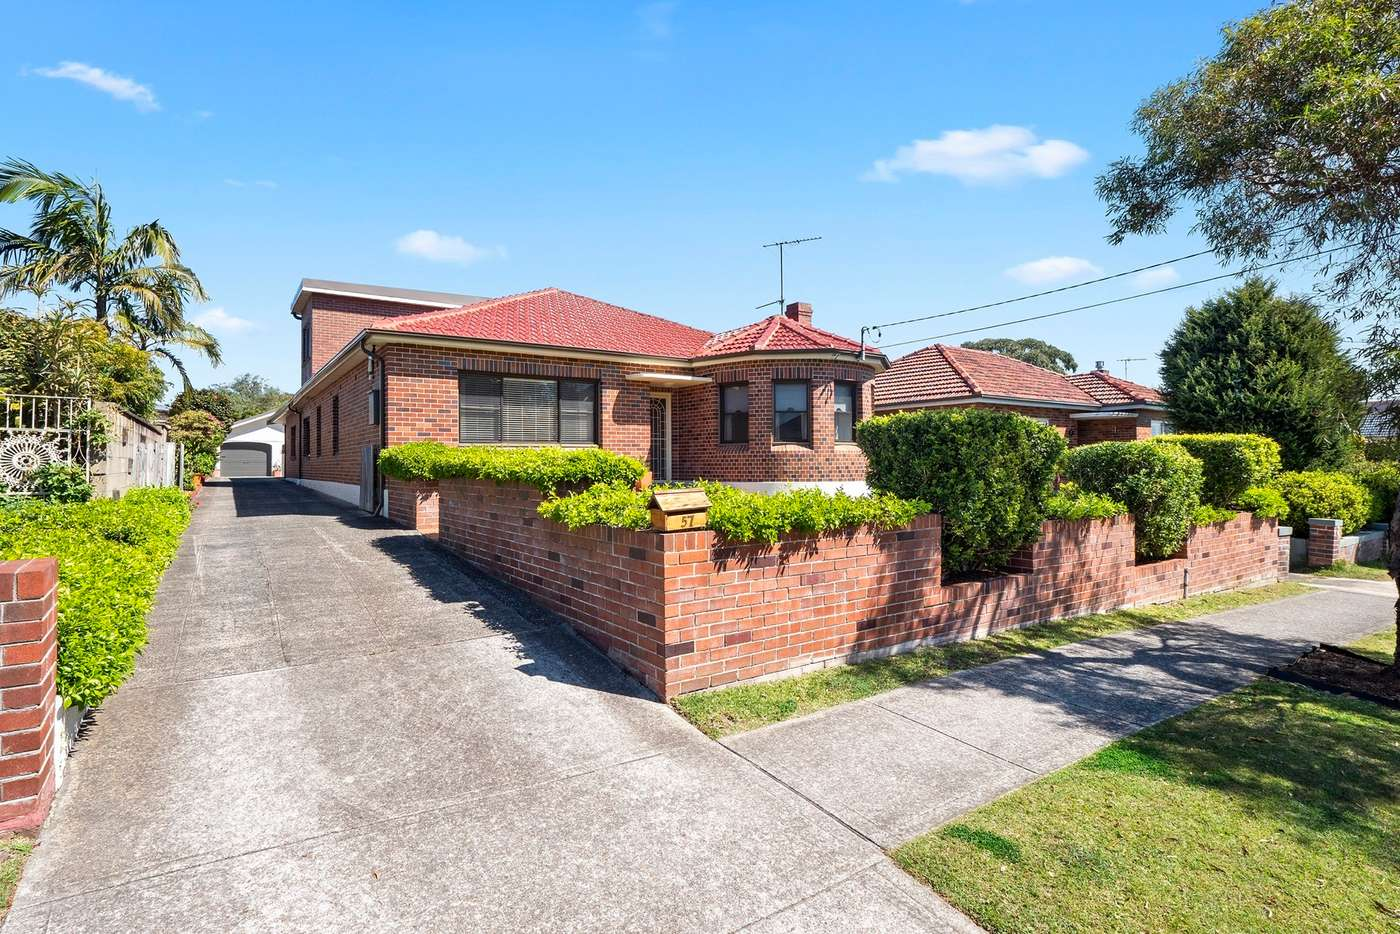 Main view of Homely house listing, 57 Moverly Road, Maroubra NSW 2035